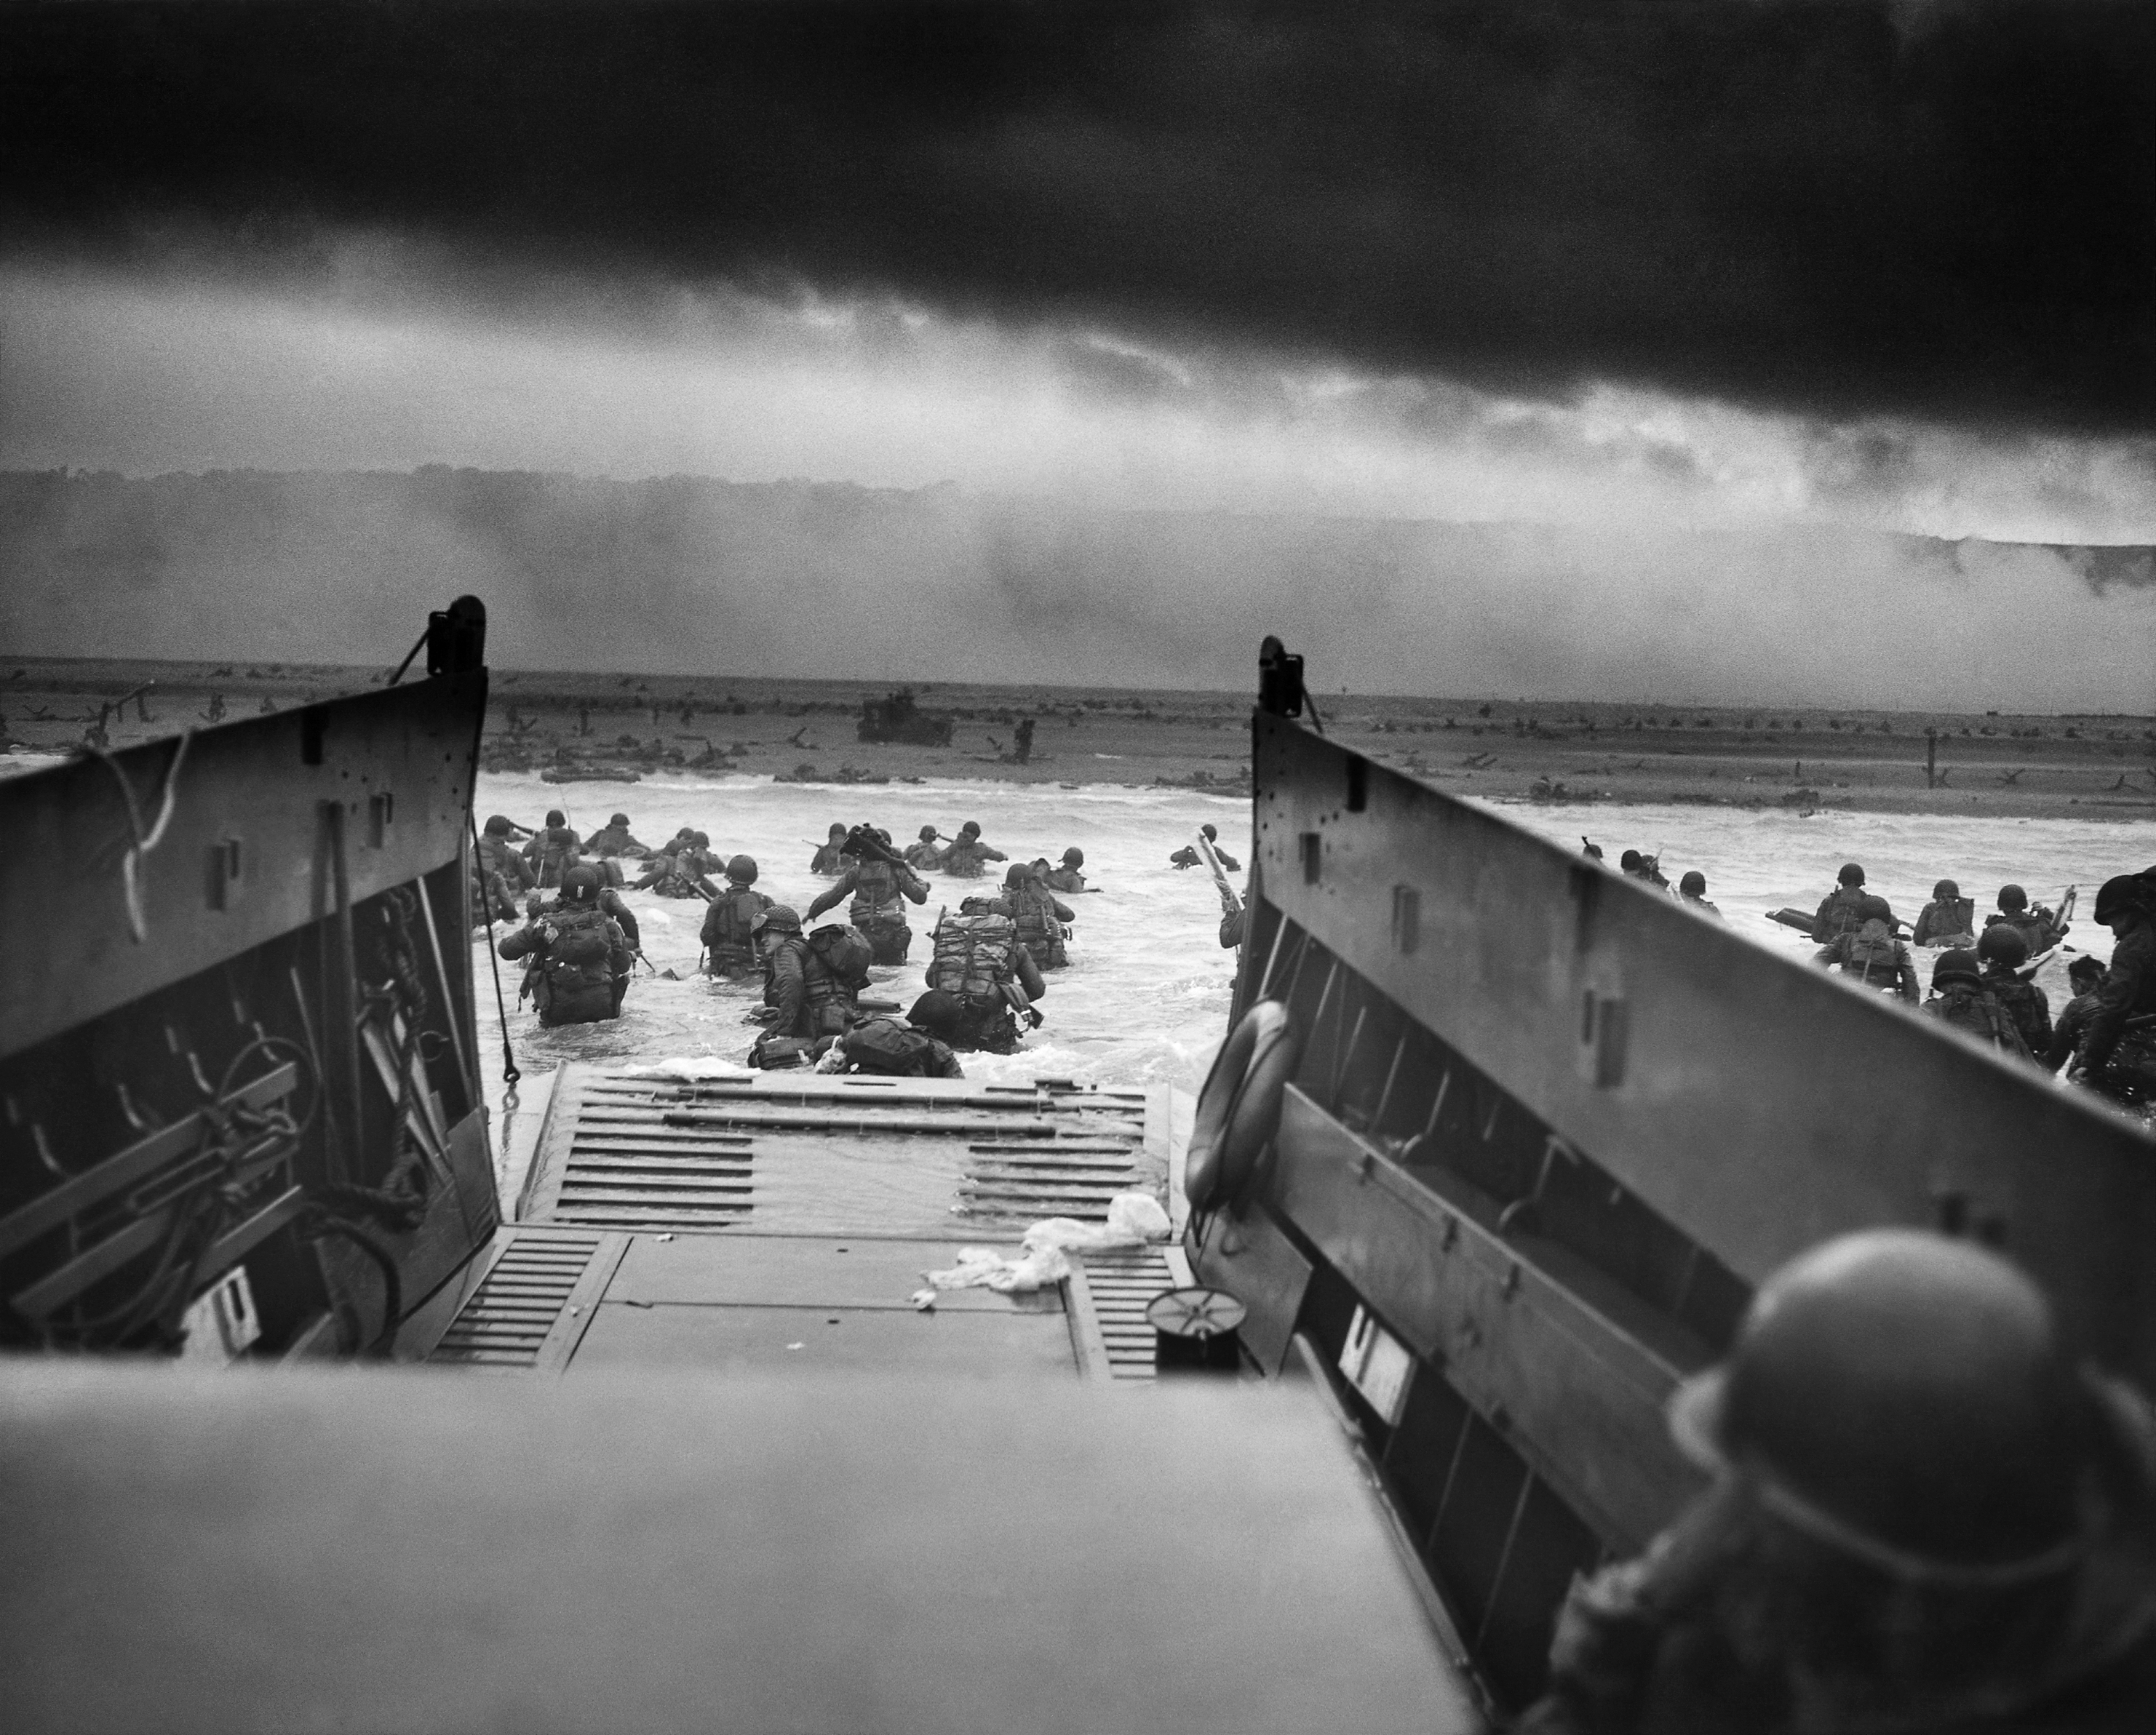 American forces landing on the beaches of Normandy on June 6, 1944